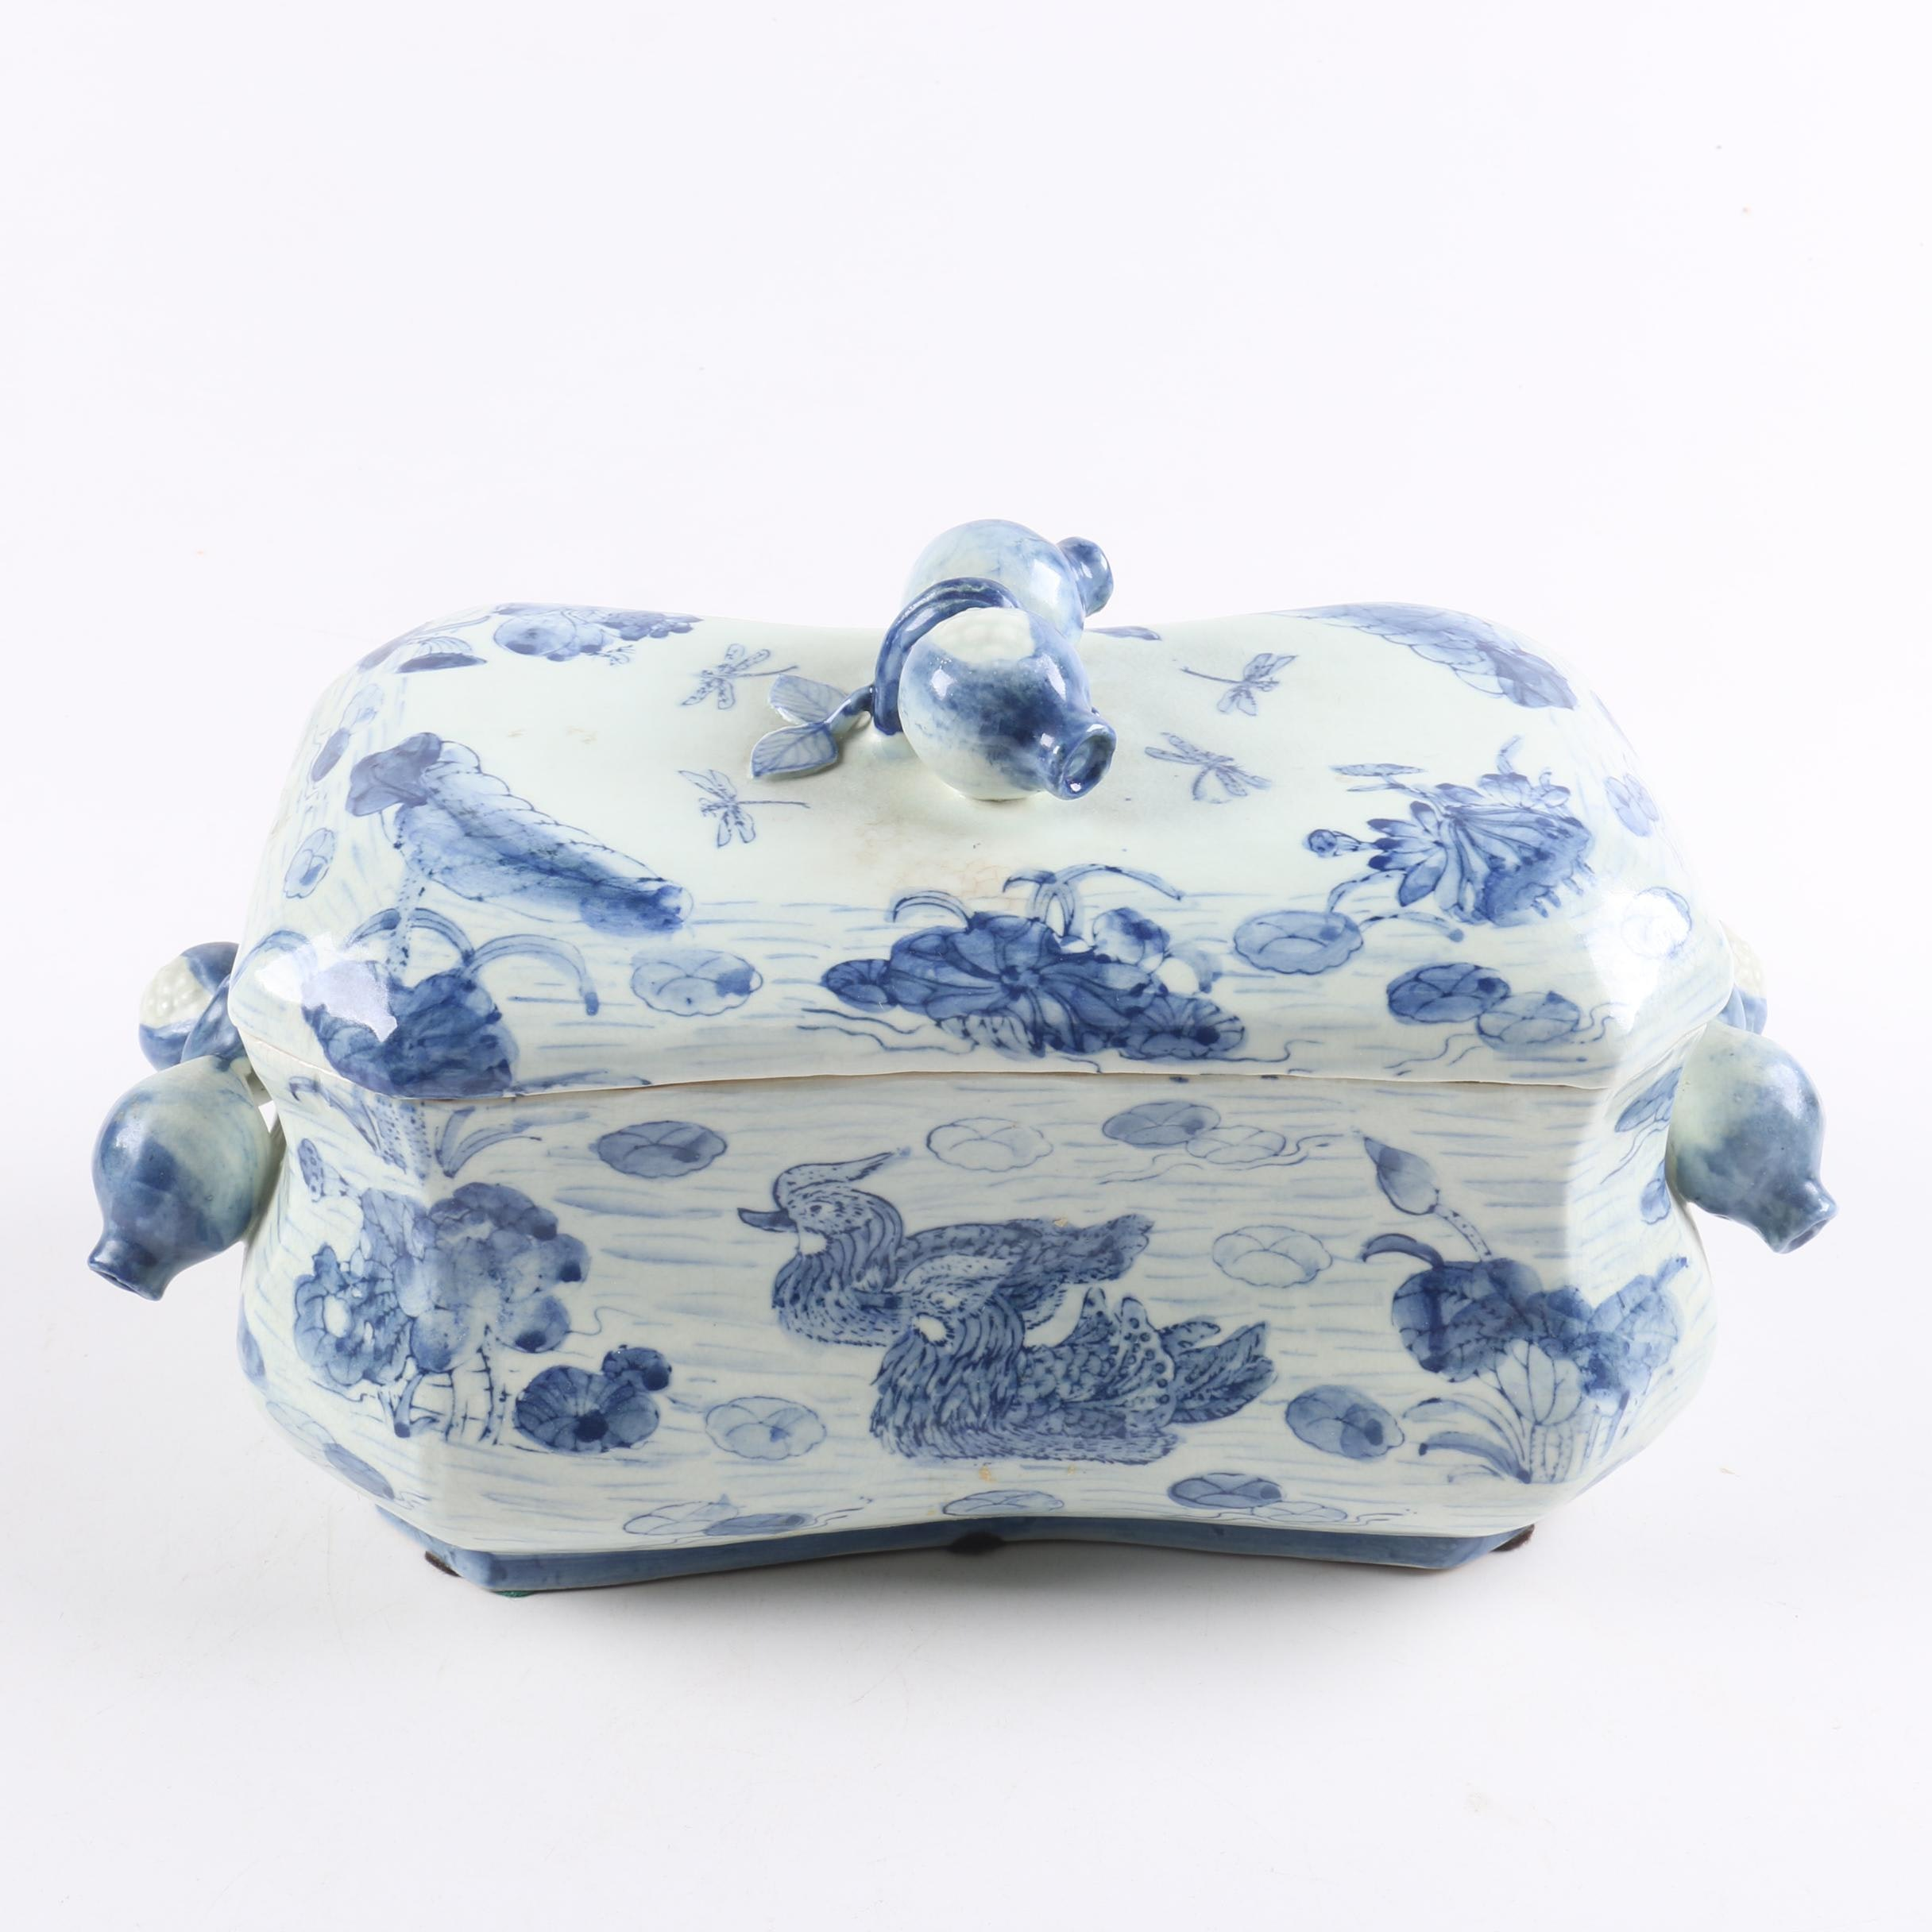 Decorative Chinese Style Soup Tureen